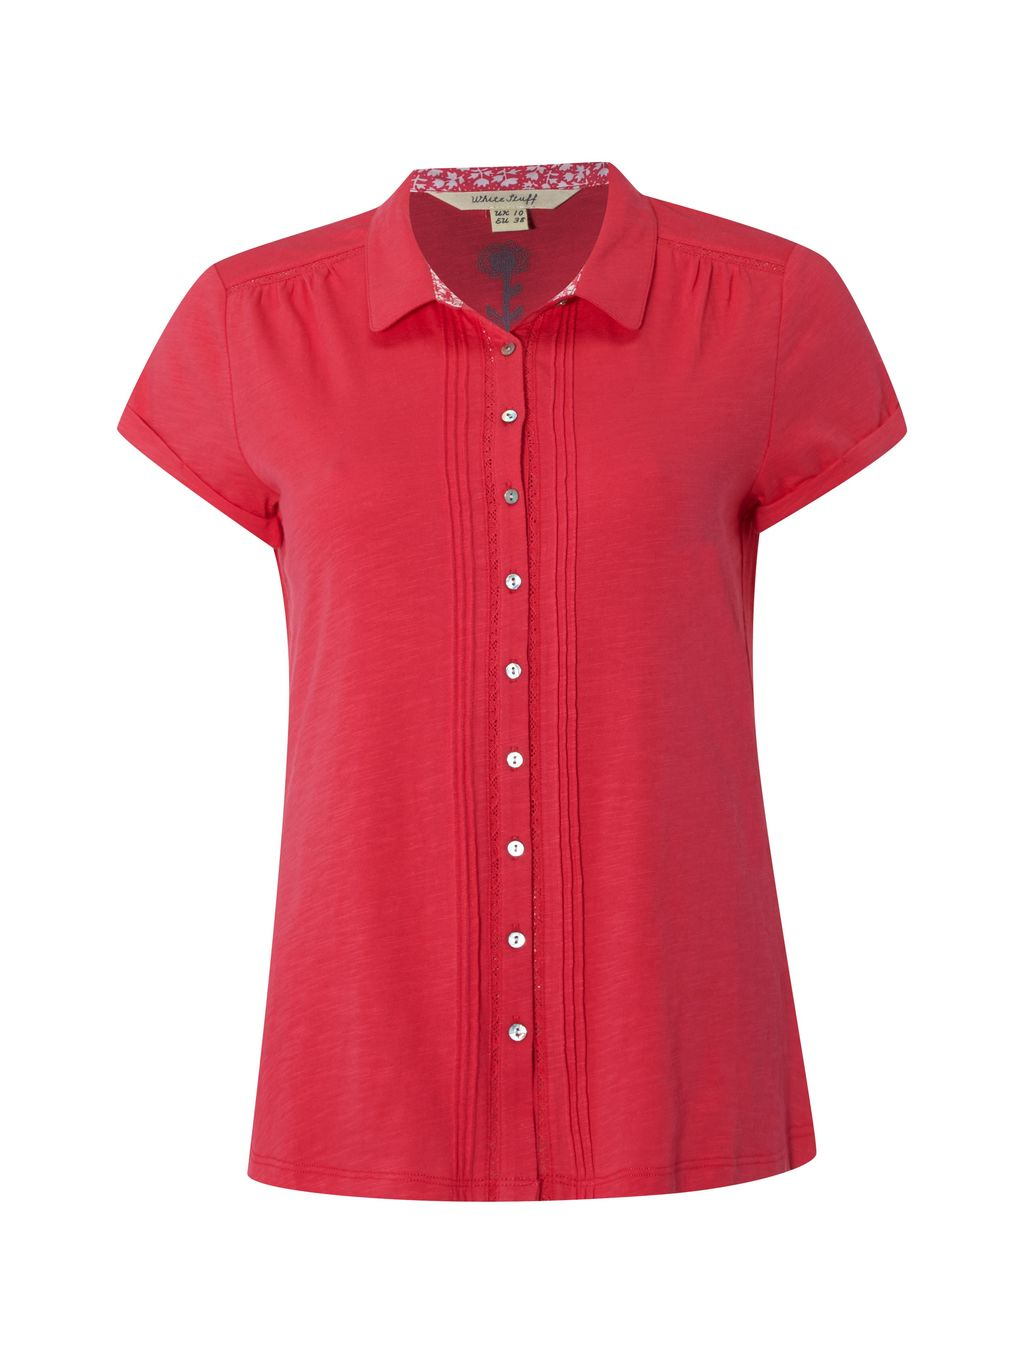 Ss Saskia Shirt, Pink - neckline: shirt collar/peter pan/zip with opening; pattern: plain; style: shirt; predominant colour: hot pink; occasions: casual; length: standard; fibres: cotton - 100%; fit: body skimming; sleeve length: short sleeve; sleeve style: standard; texture group: cotton feel fabrics; pattern type: fabric; season: s/s 2016; wardrobe: highlight